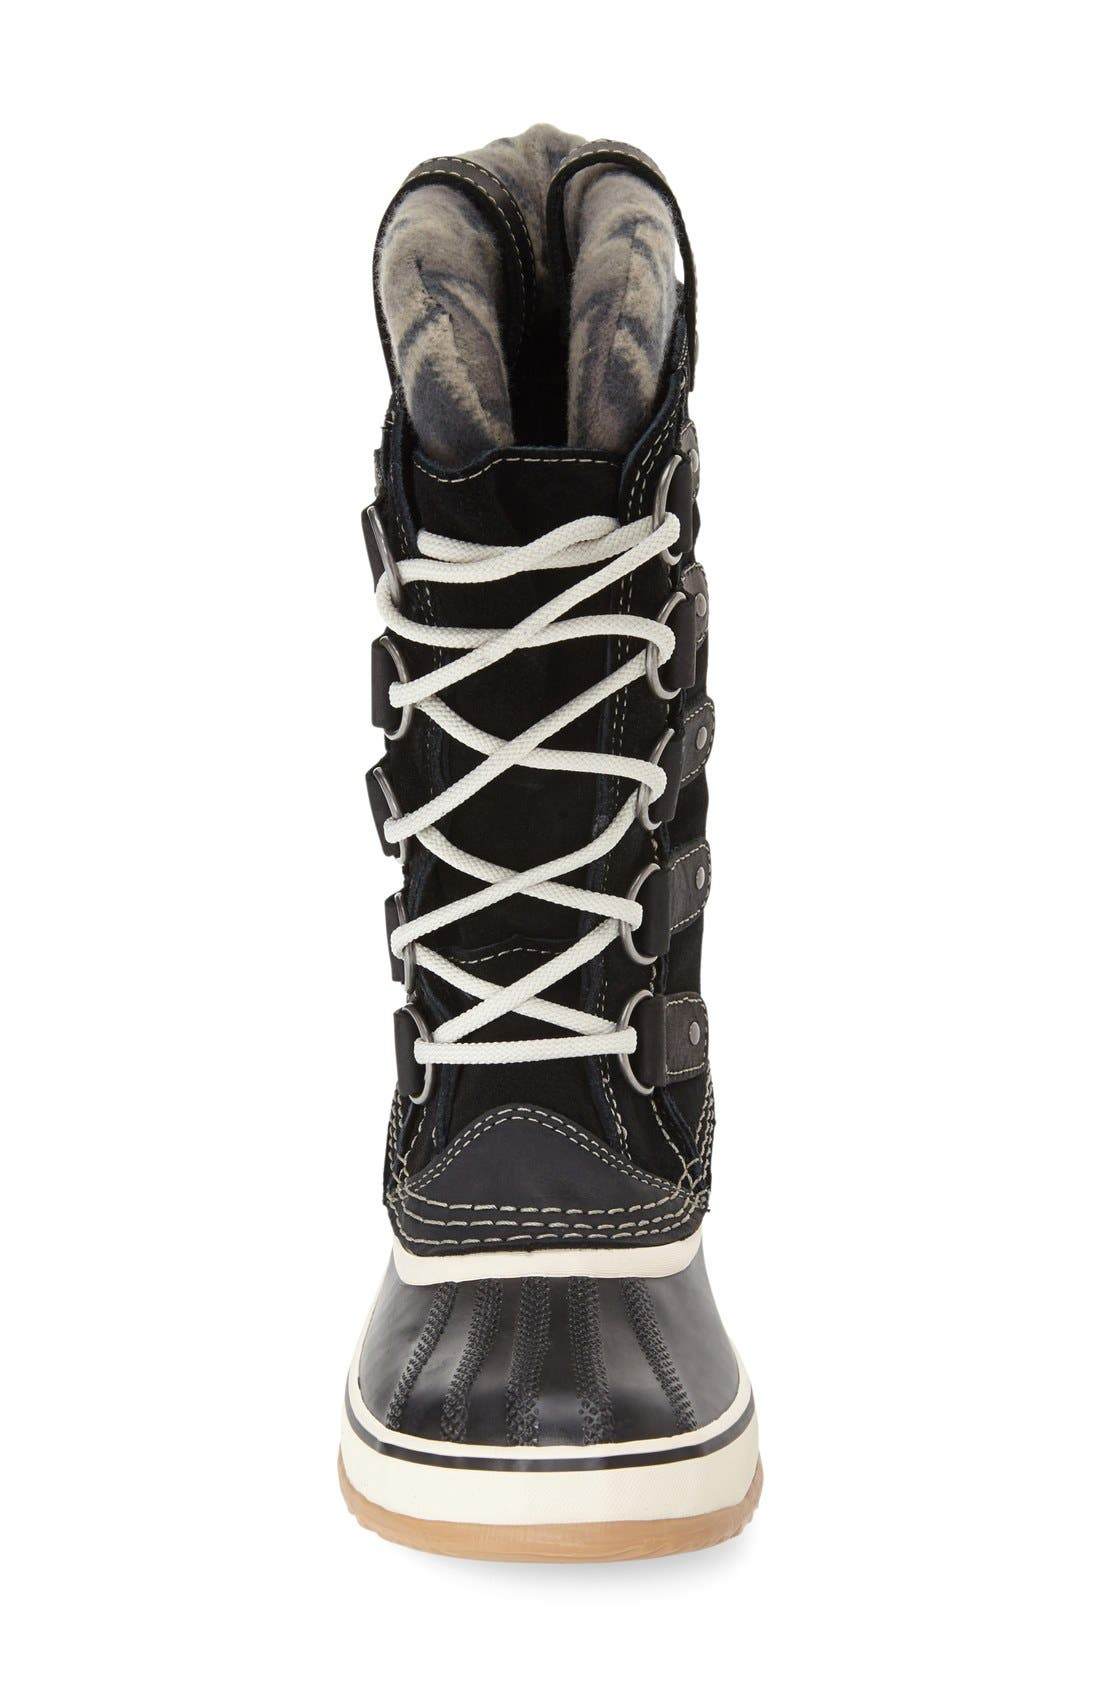 SOREL,                             'Joan of Arctic - Knit II' Waterproof Boot,                             Alternate thumbnail 2, color,                             010